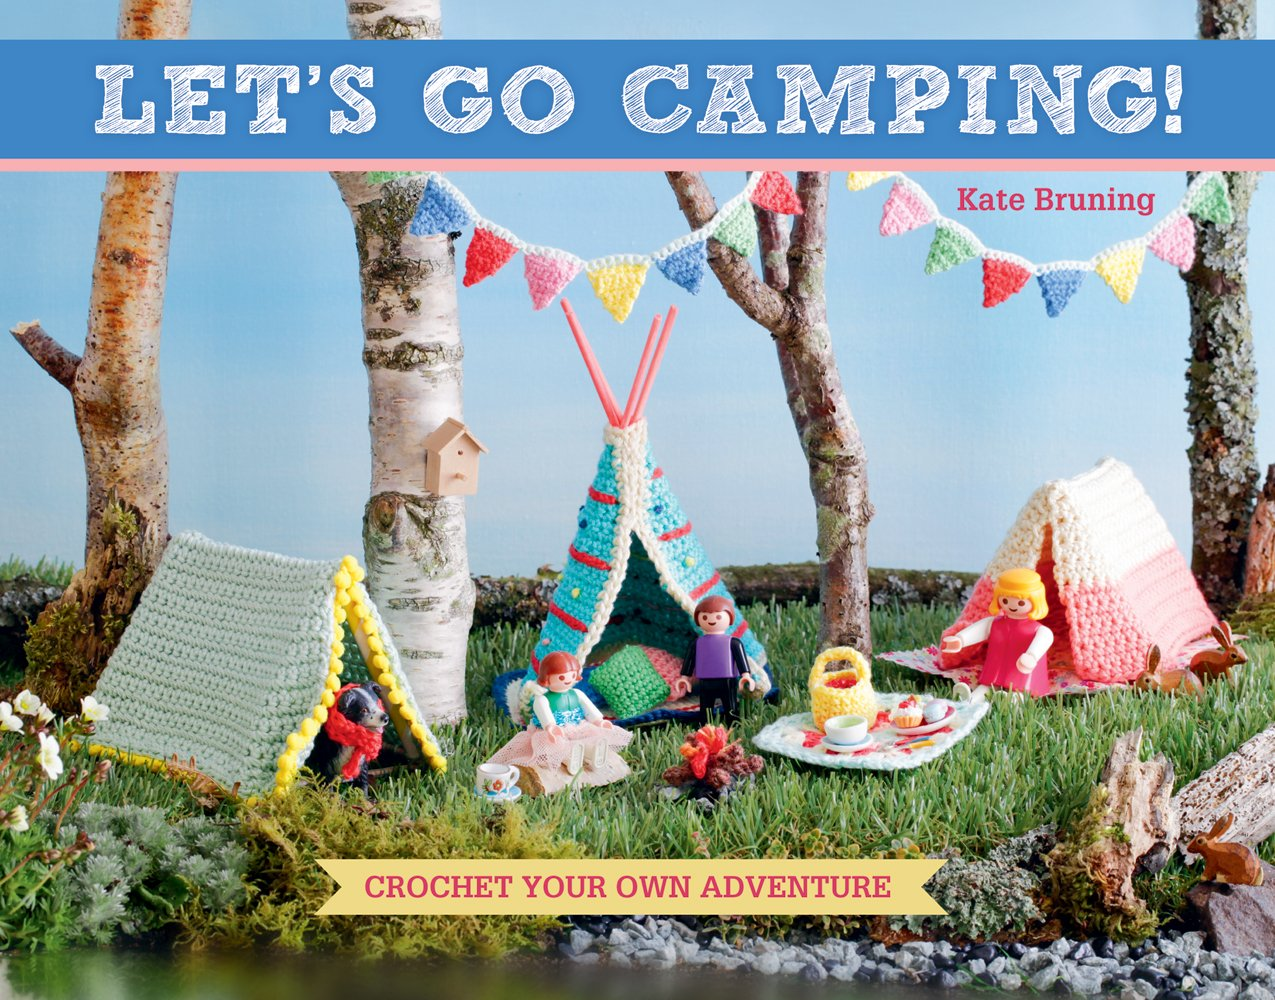 Let's Go Camping!: Crochet Your Own Adventure: Kate Bruning: 0744527113903:  Amazon.com: Books